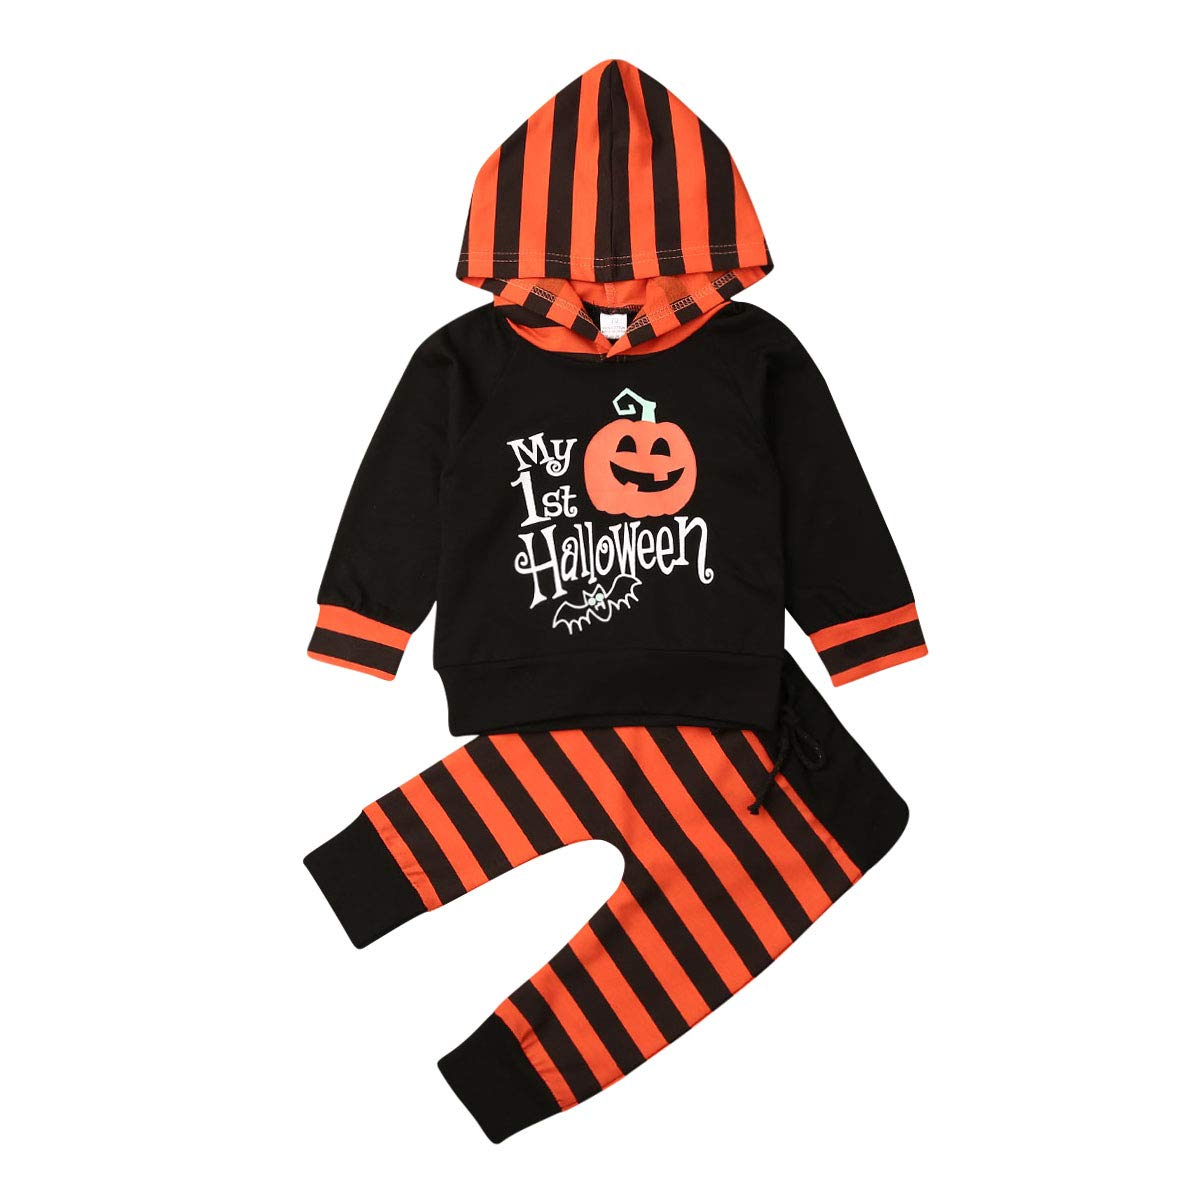 Newborn My First Halloween Outfits Baby Boy Girl Pumpkin Hoodie Romper One Piece Hooded Jumpsuit Clothing